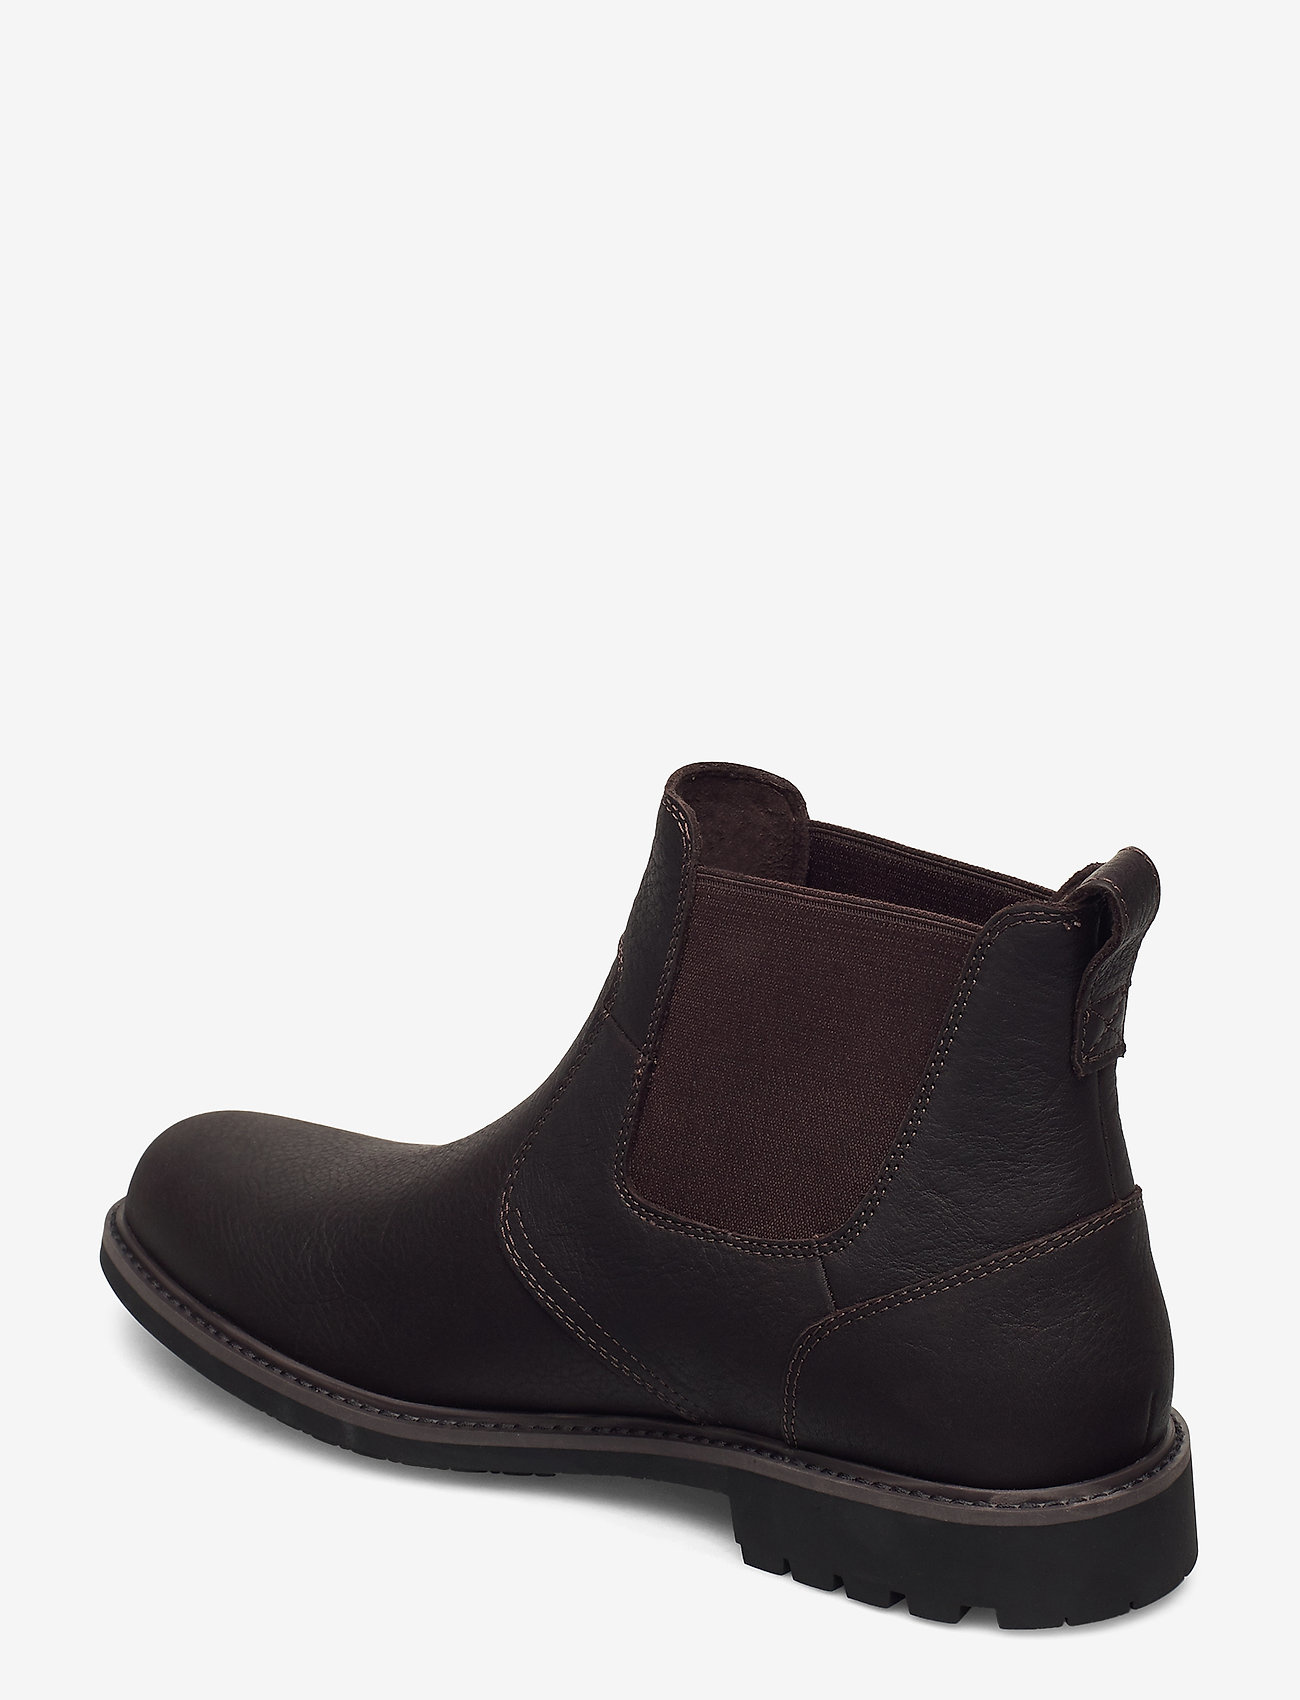 Timberland Chelsea boots , bruin